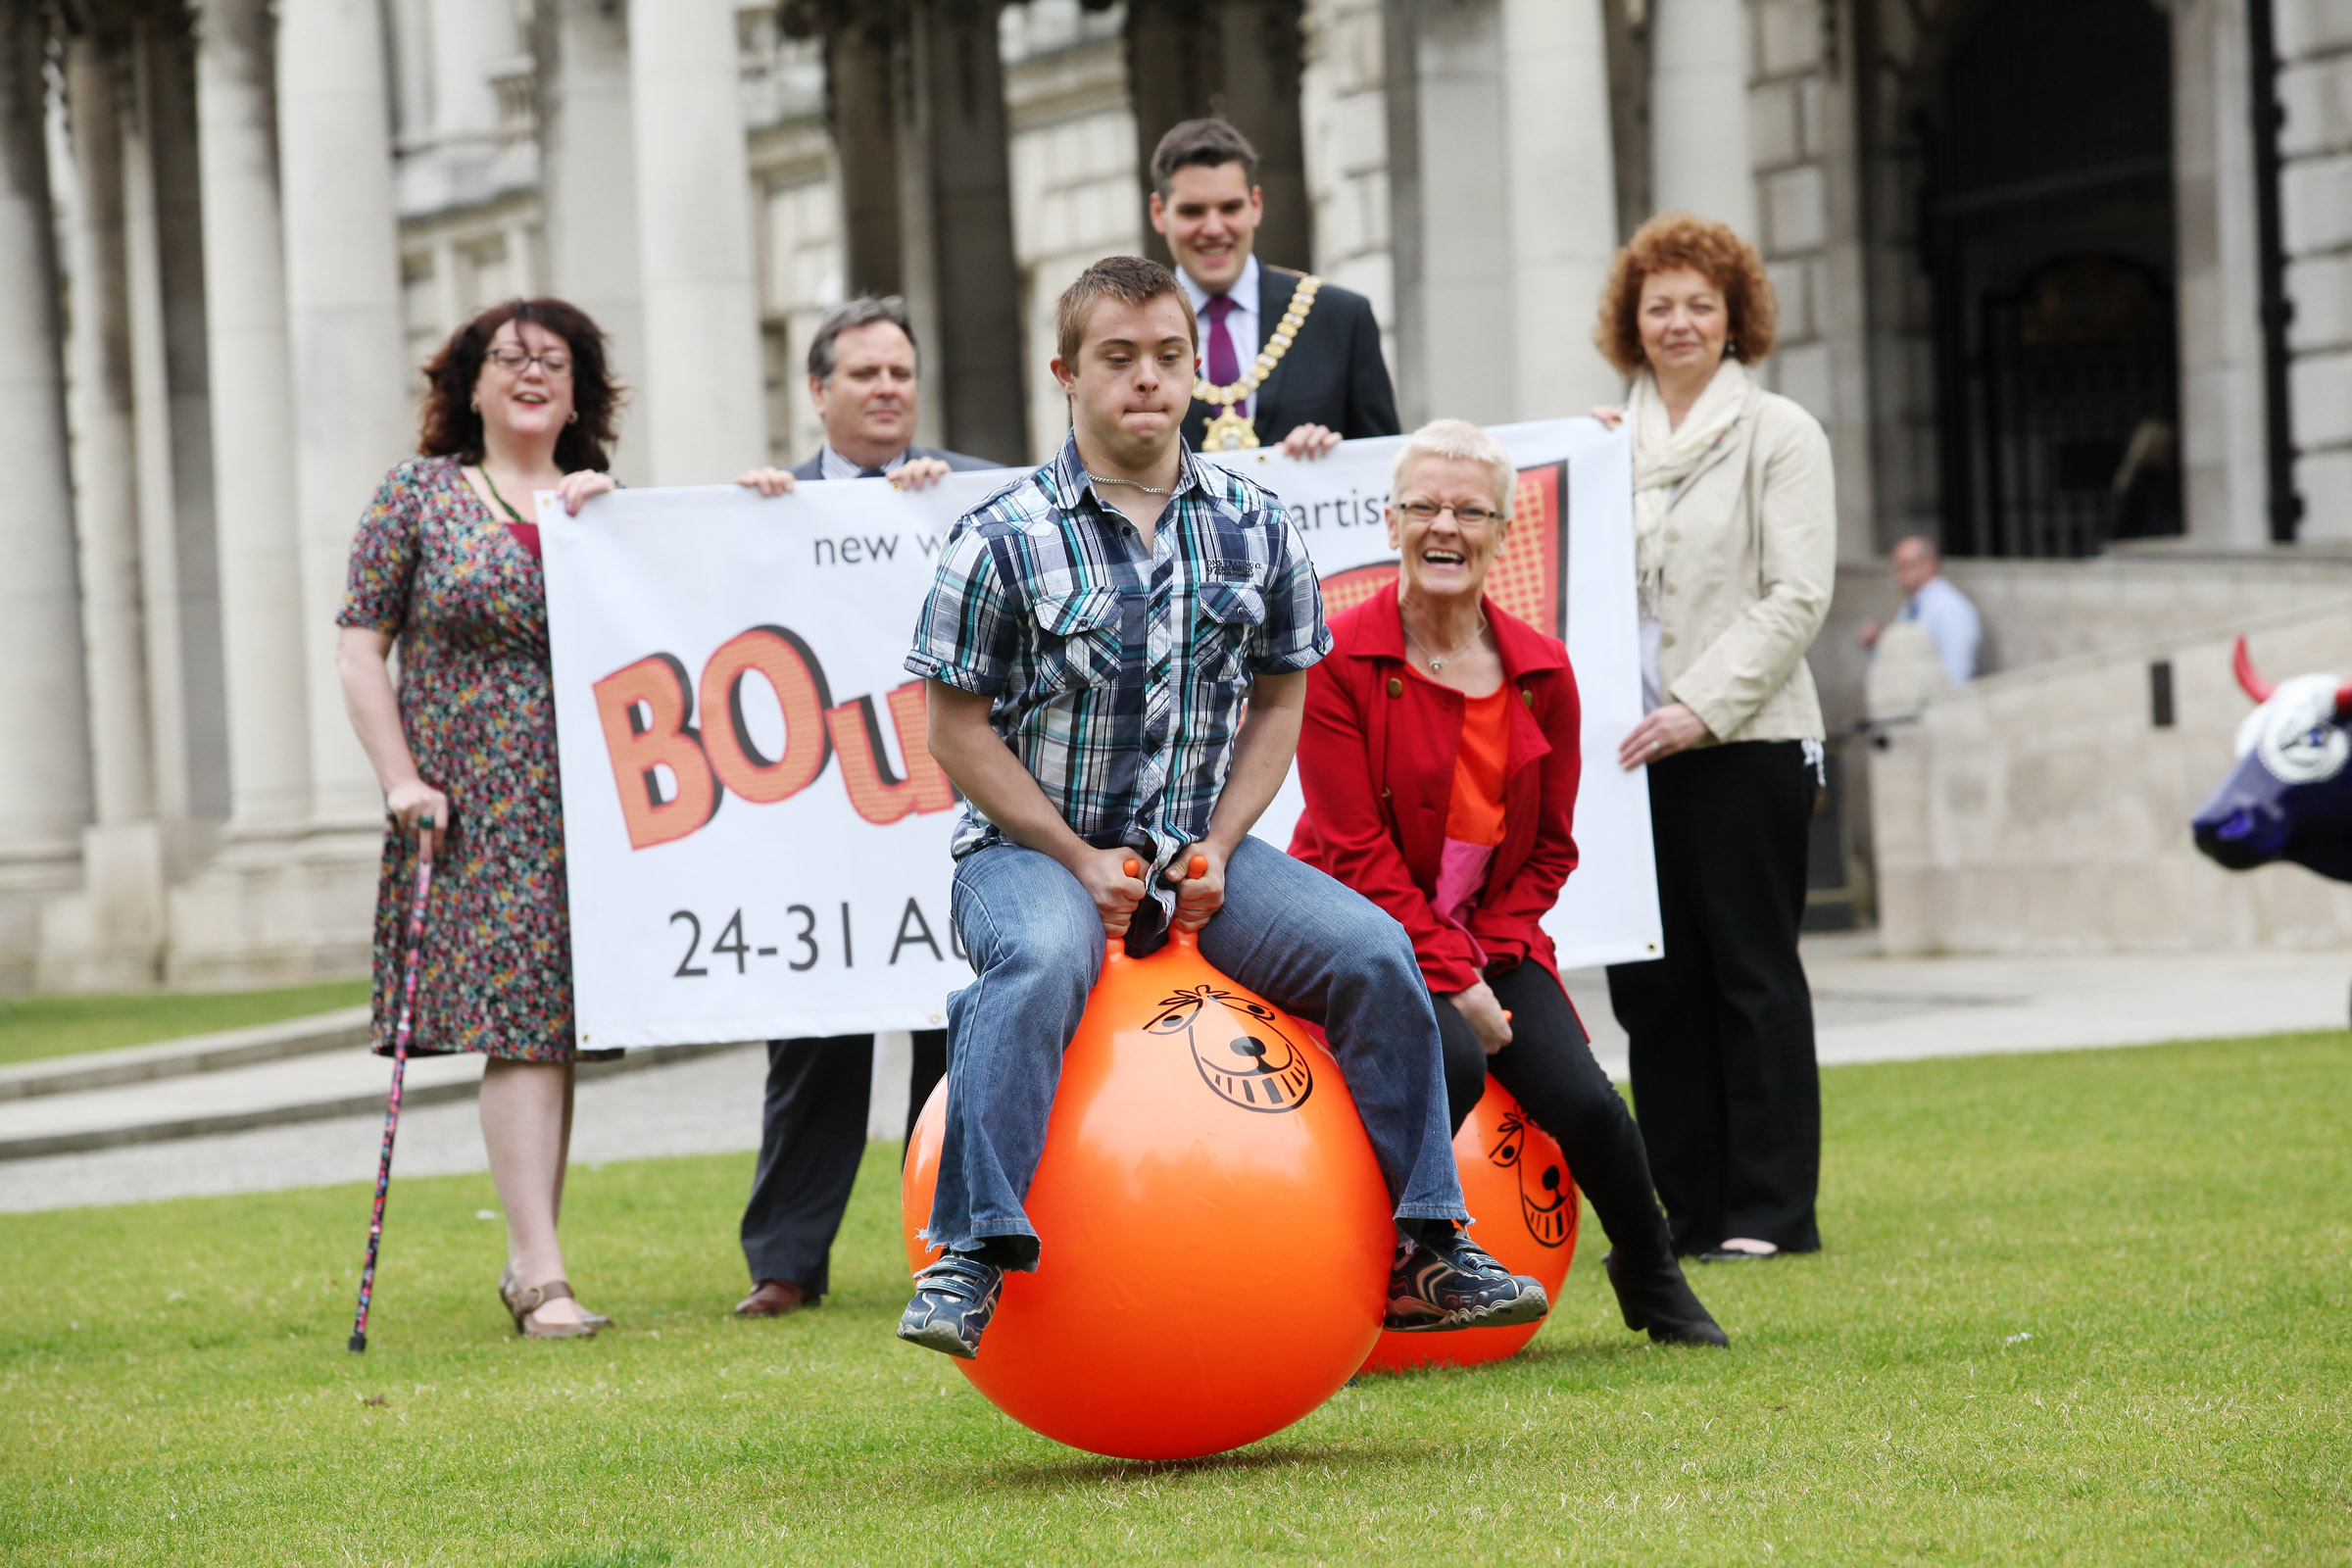 Bouncing for Joy as ADF unveils NI's first Disability and Deaf Arts festival